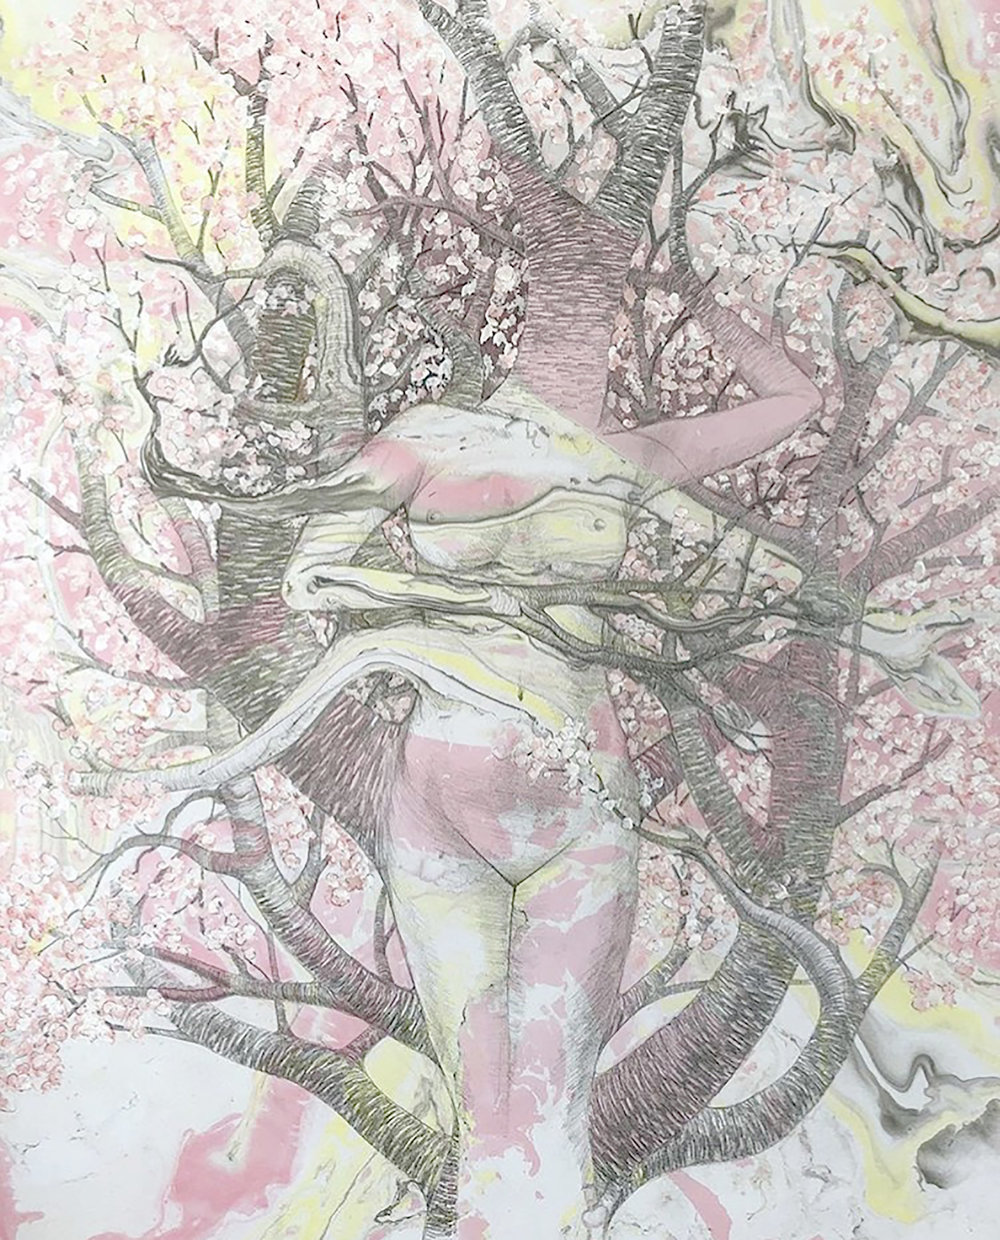 "Dryad    graphite, watercolor and acrylic on bristol board with suminagashi marbling  14"" x 11""  2018  (sold)"